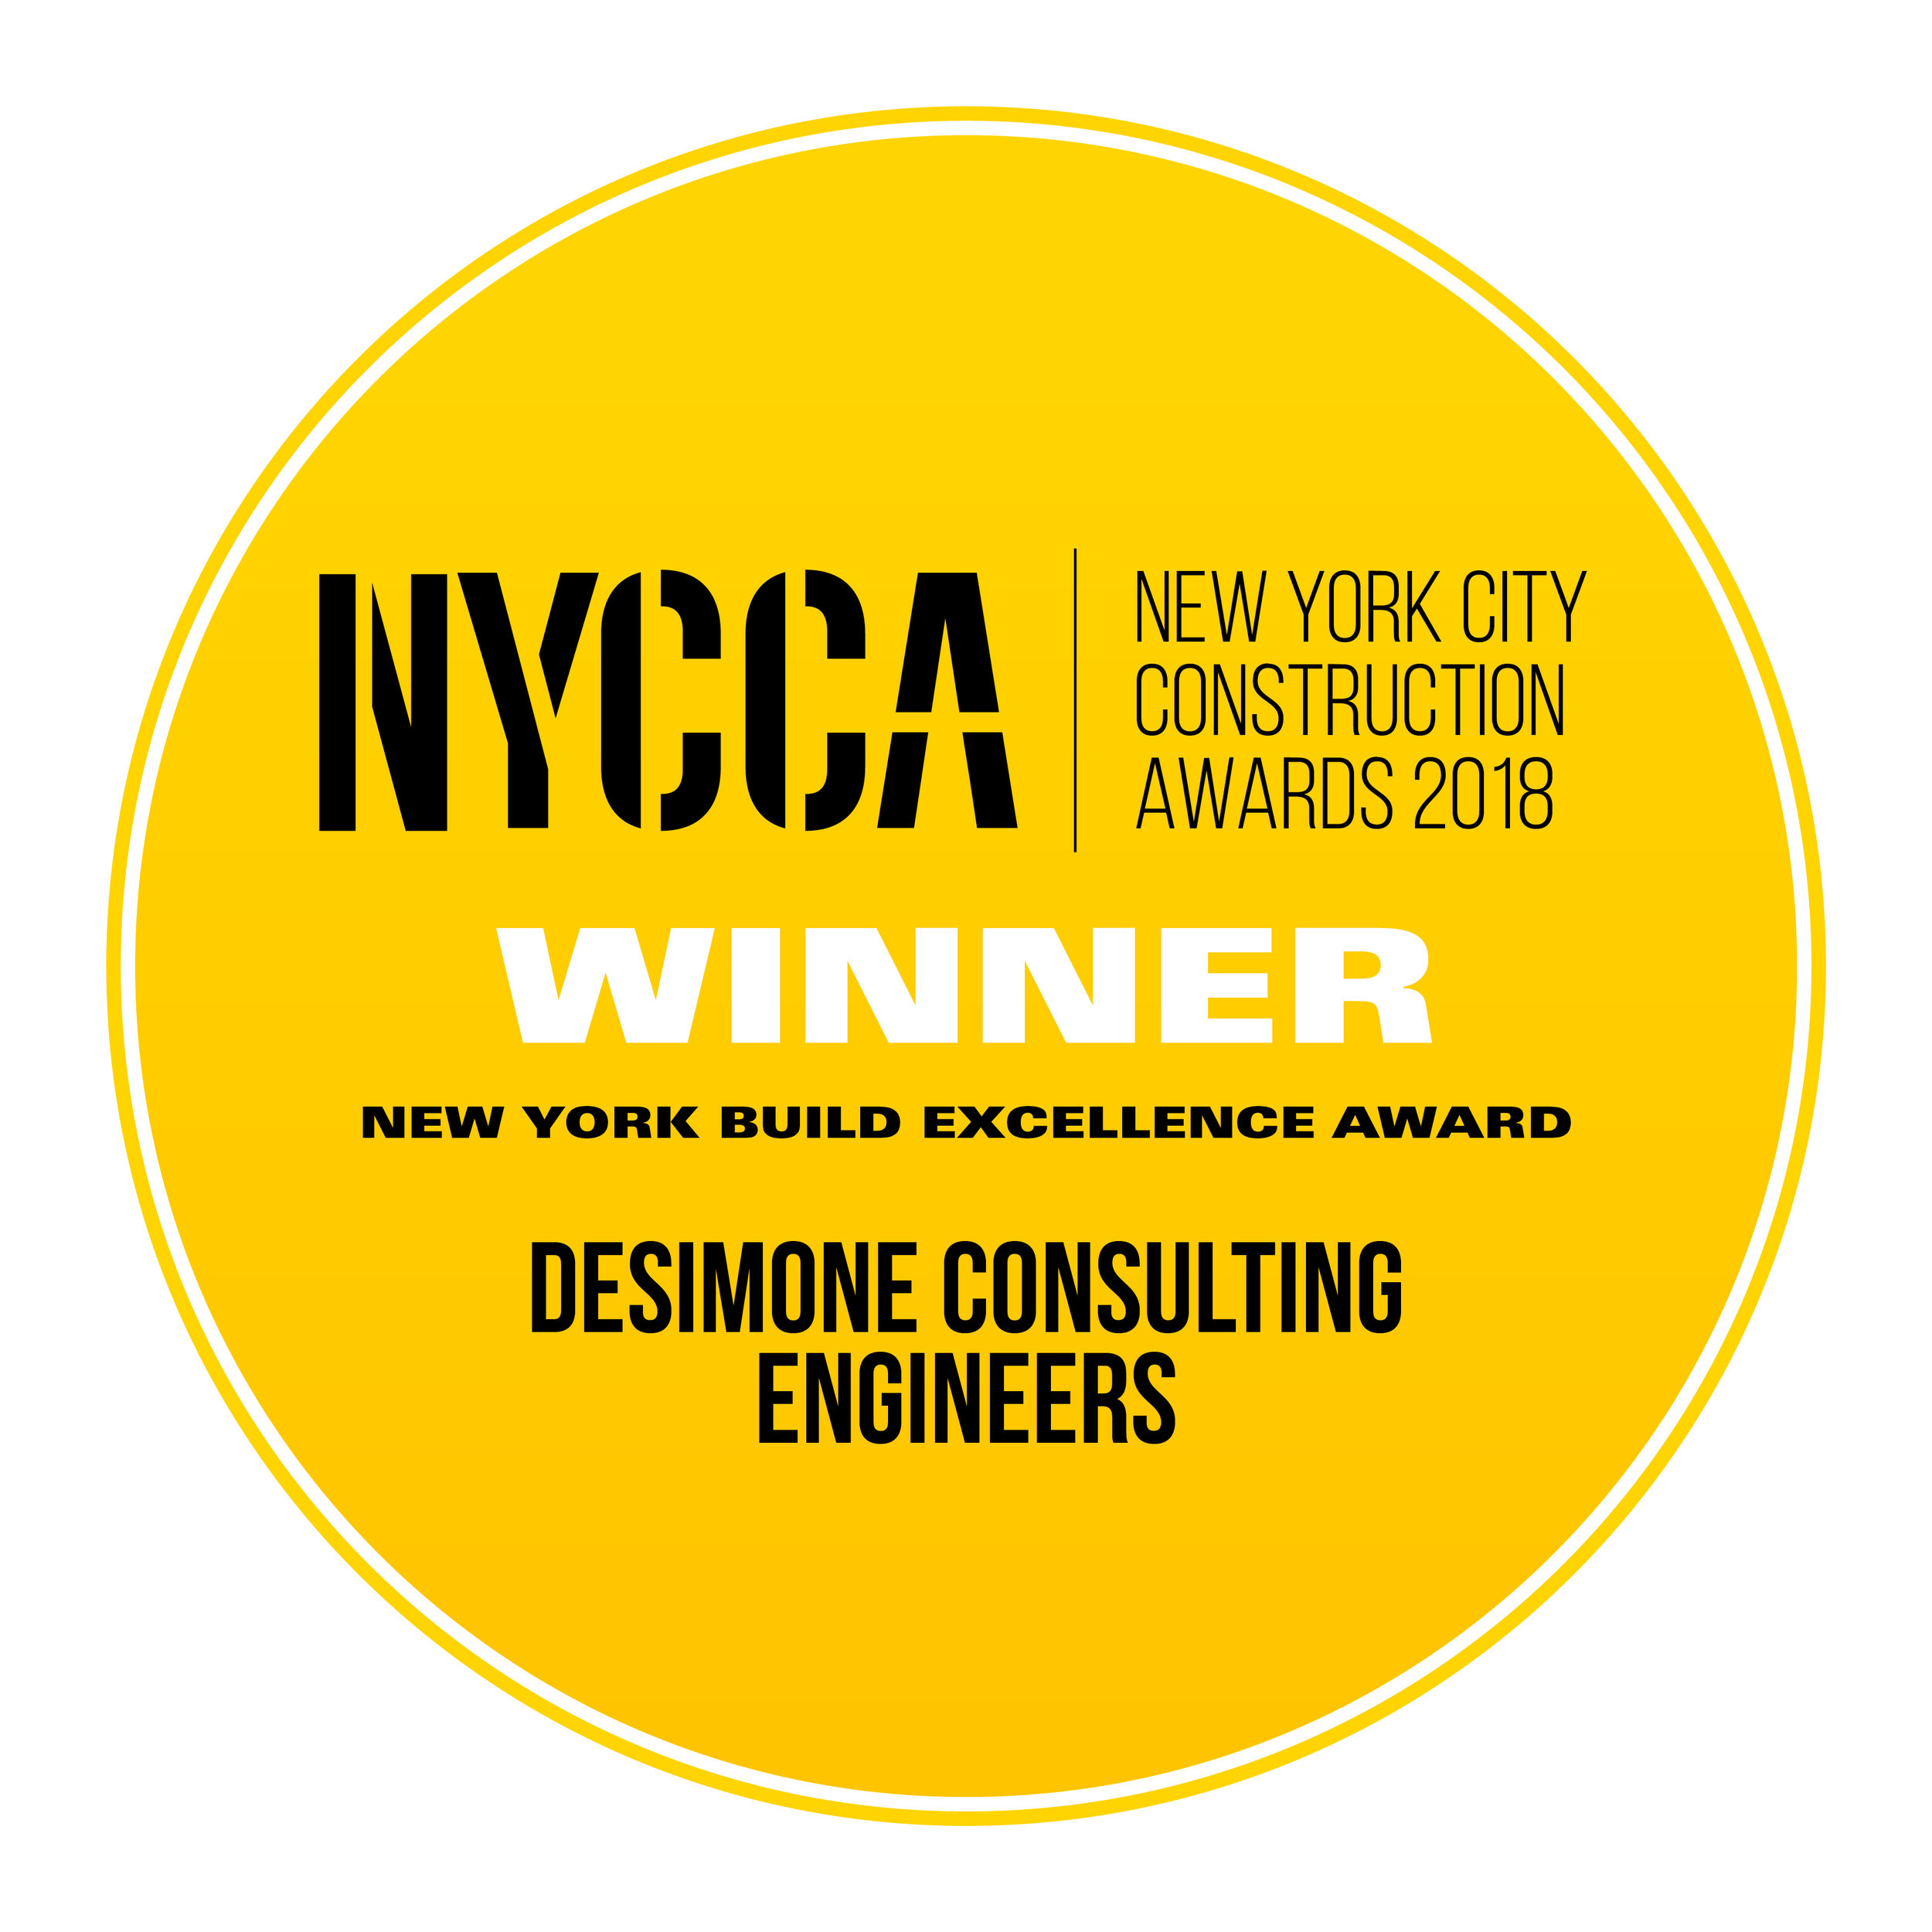 DeSimone Consulting Engineers - New York Build Excellence Award